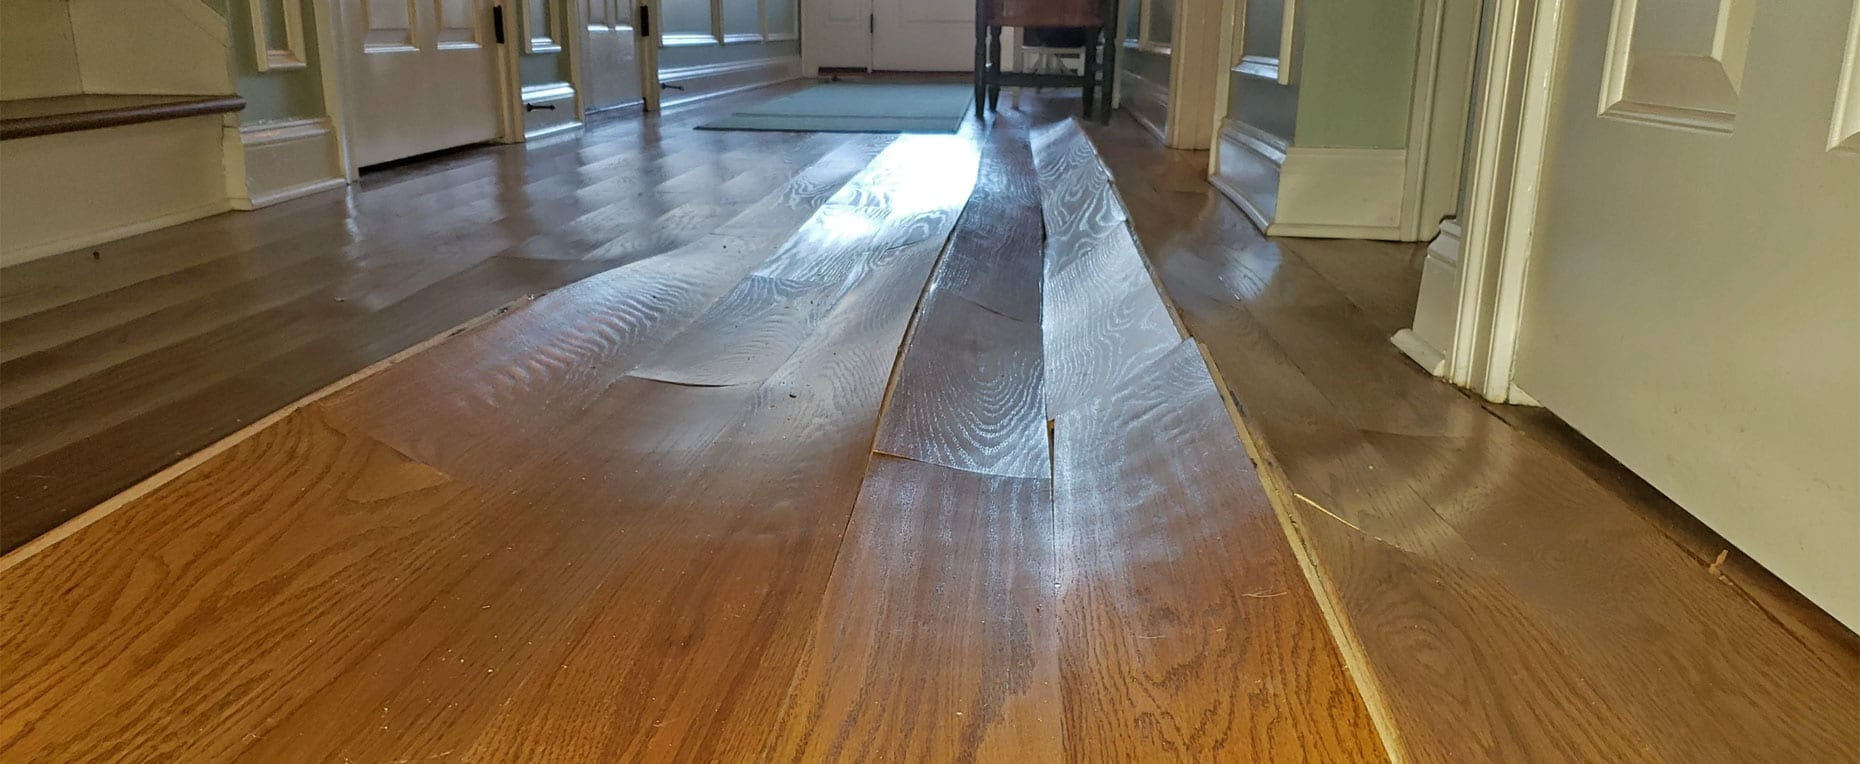 I think my hardwood floor has water damage? At this point in the photo, it's too late.